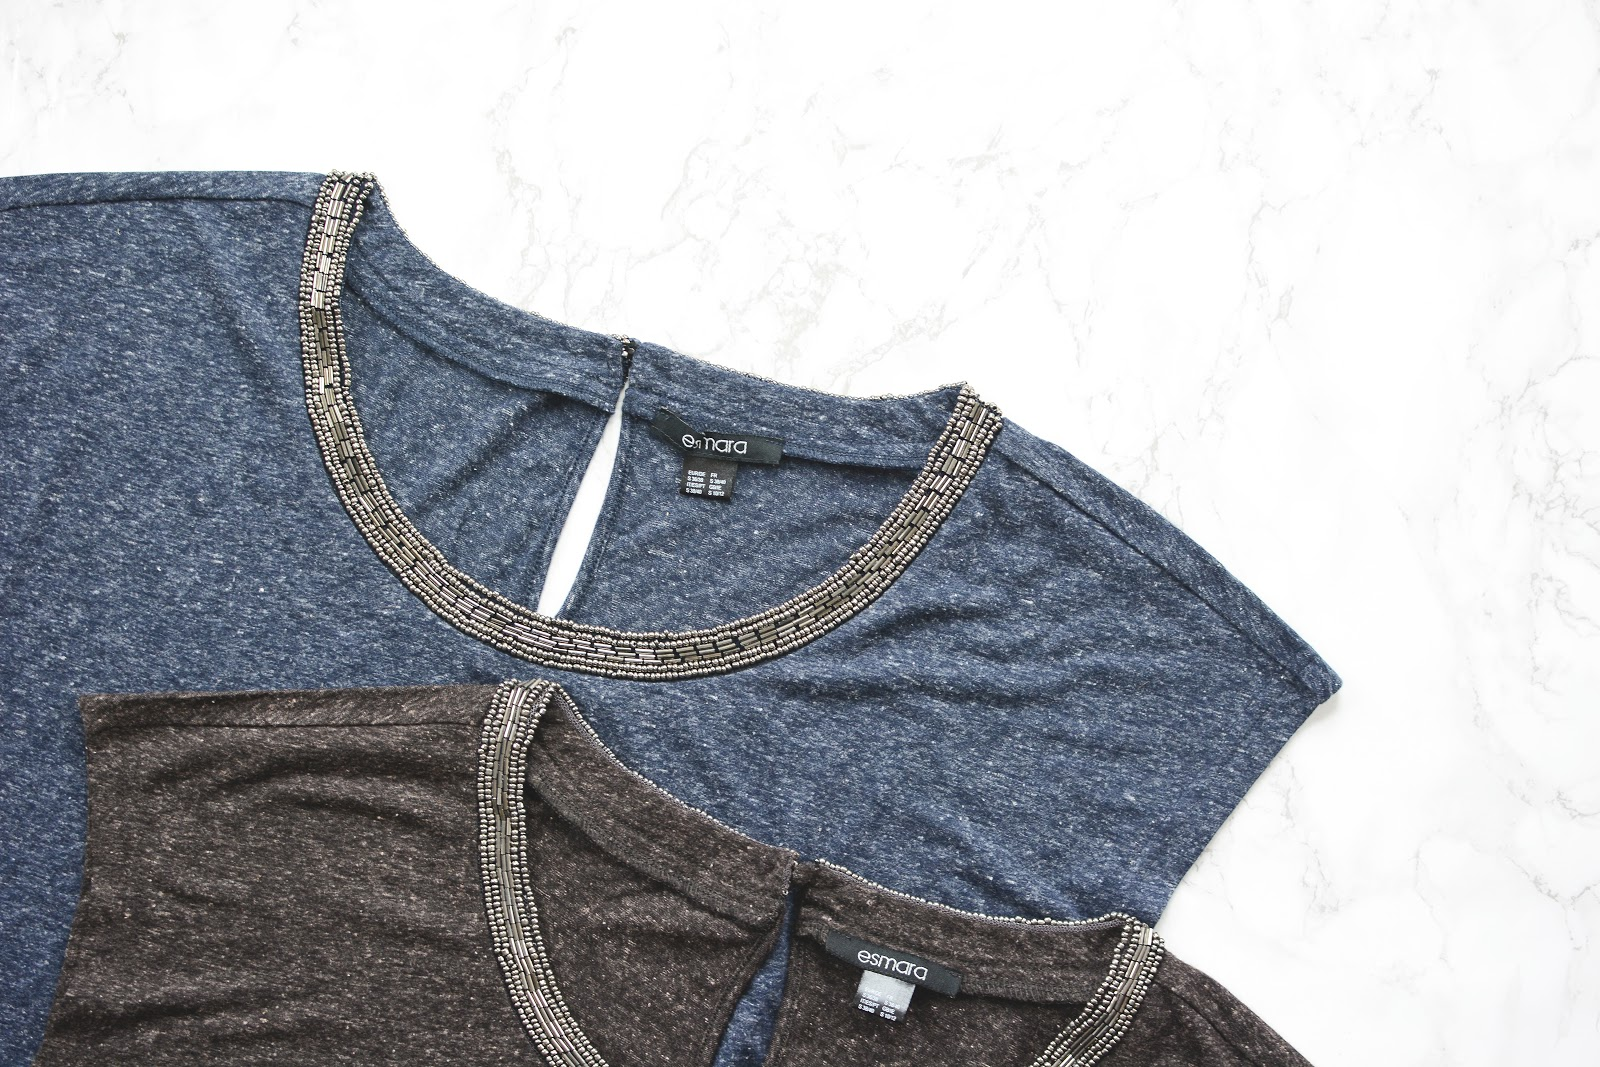 slouchy denim effect tops from lidl